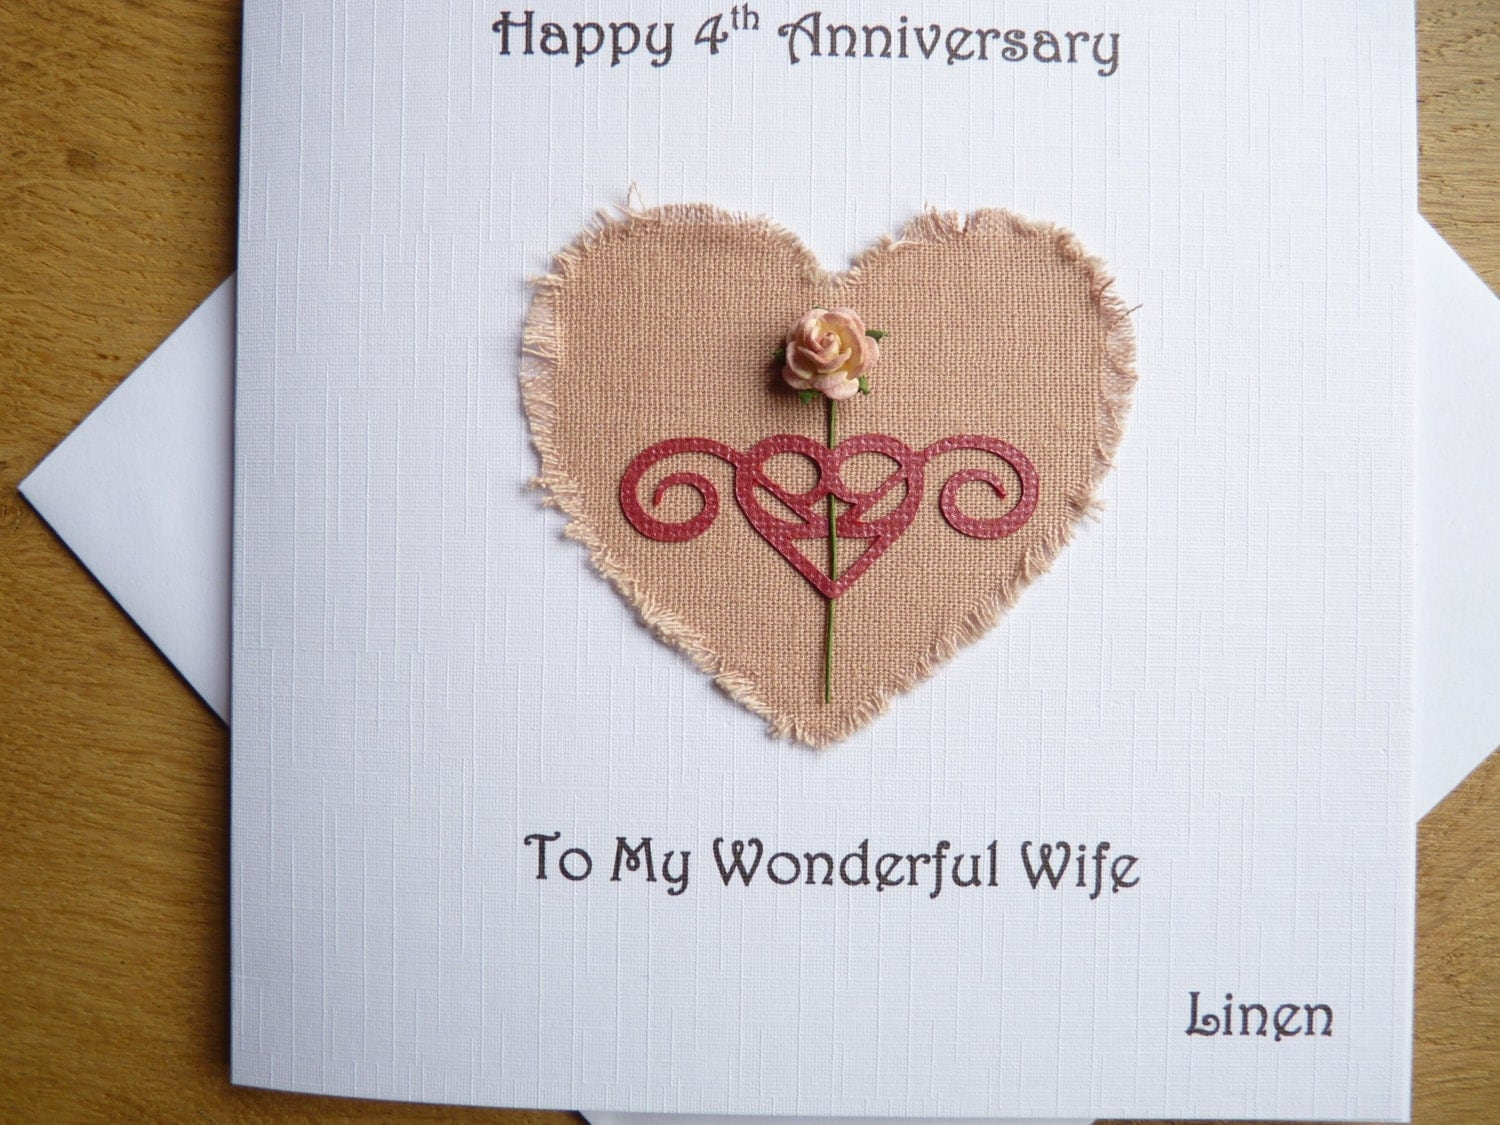 Fourth Year Wedding Anniversary Traditional Gift: 4th Wedding Anniversary Linen Four Years Wife Anniversary Gift